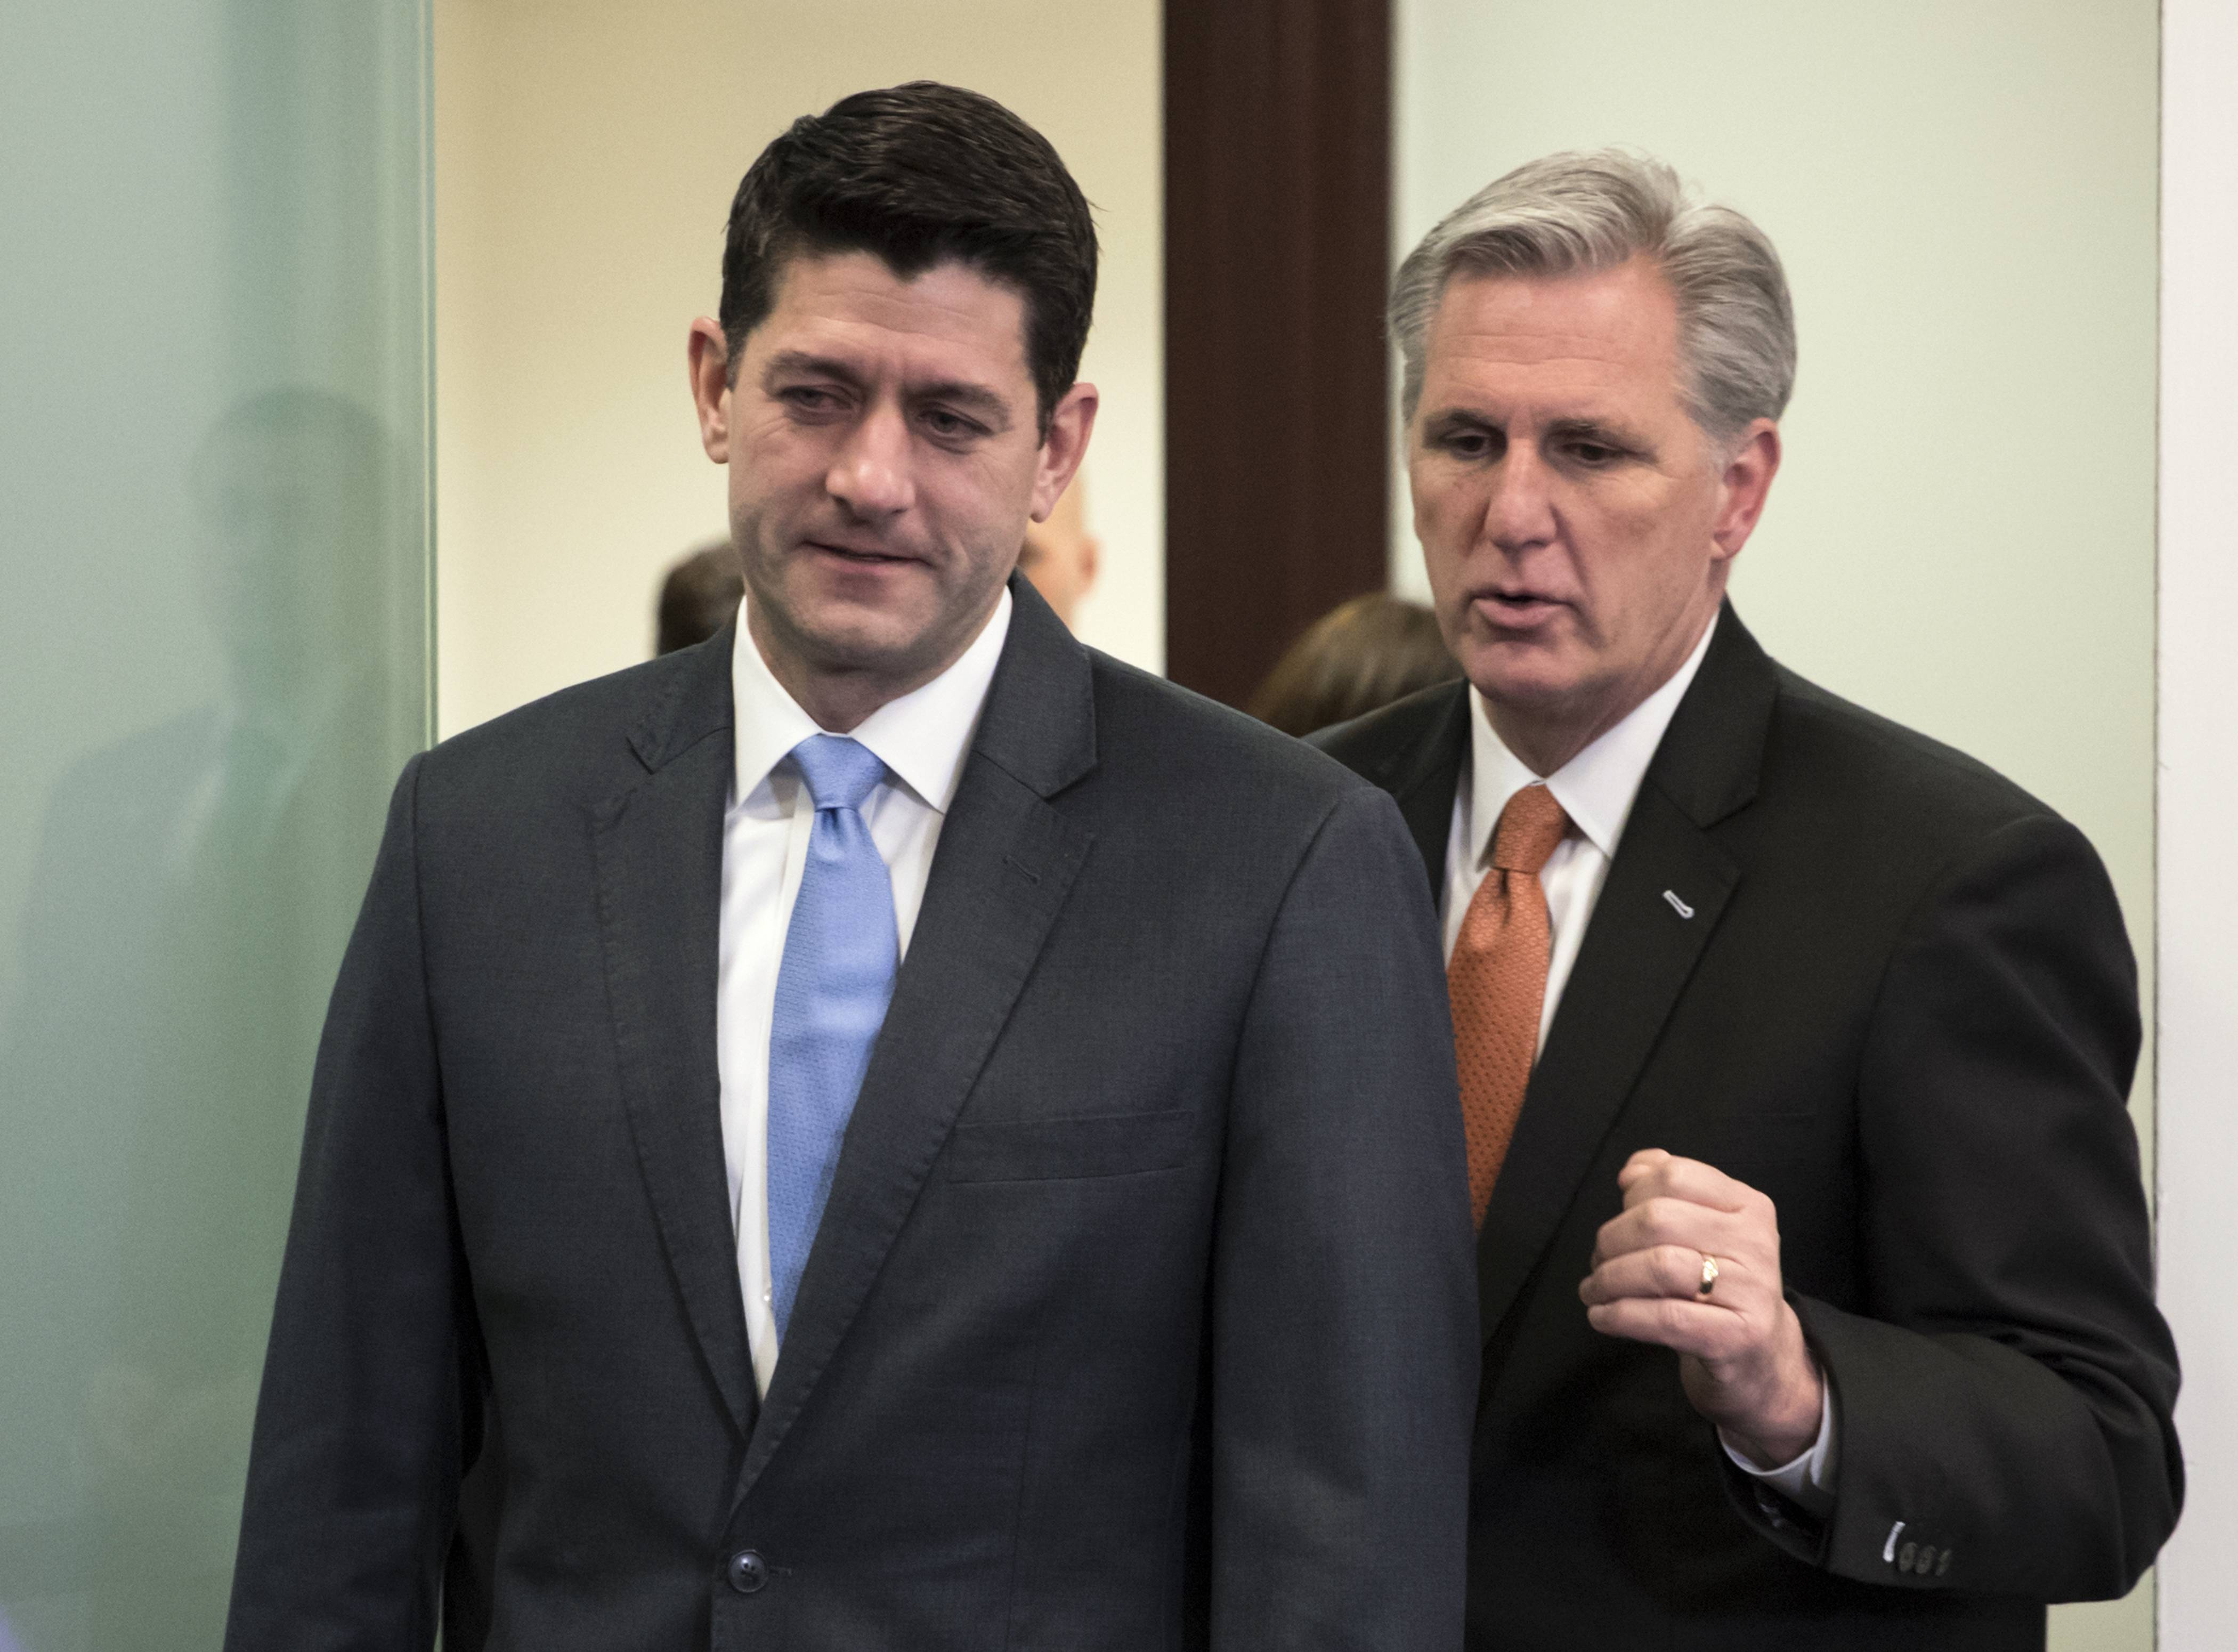 Speaker of the House Paul Ryan, R-Wis., left, and Majority Leader Kevin McCarthy, R-Calif., confer as they arrive to meet with reporters following a closed-door GOP strategy session at the Capitol in Washington, Tuesday, Feb. 6, 2018. The GOP-controlled House is slated Tuesday to pass a plan to keep the government open for six more weeks while Washington grapples with a potential follow-up budget pact and, perhaps, immigration legislation.